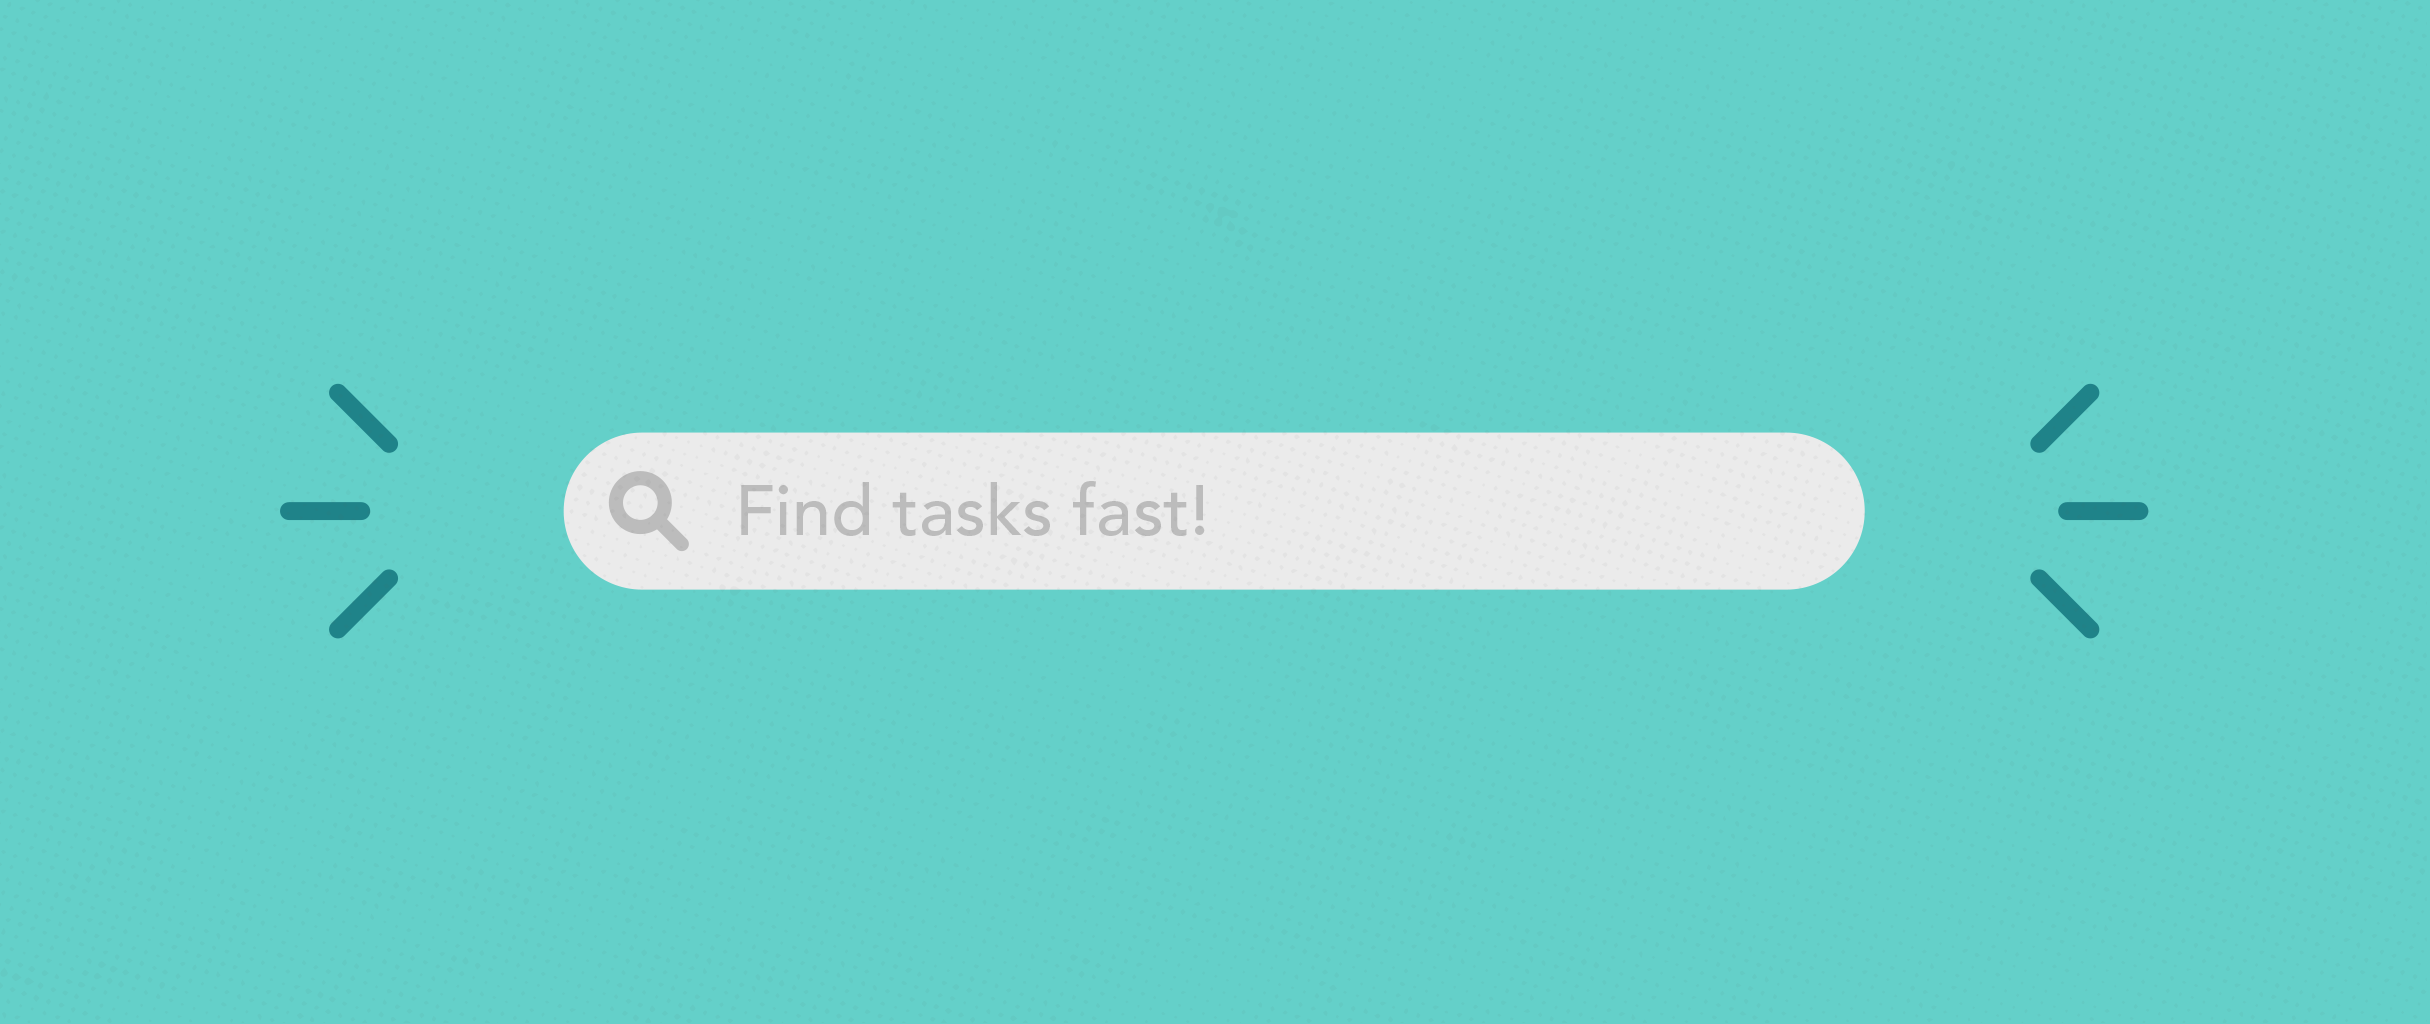 Search bar for finding tasks